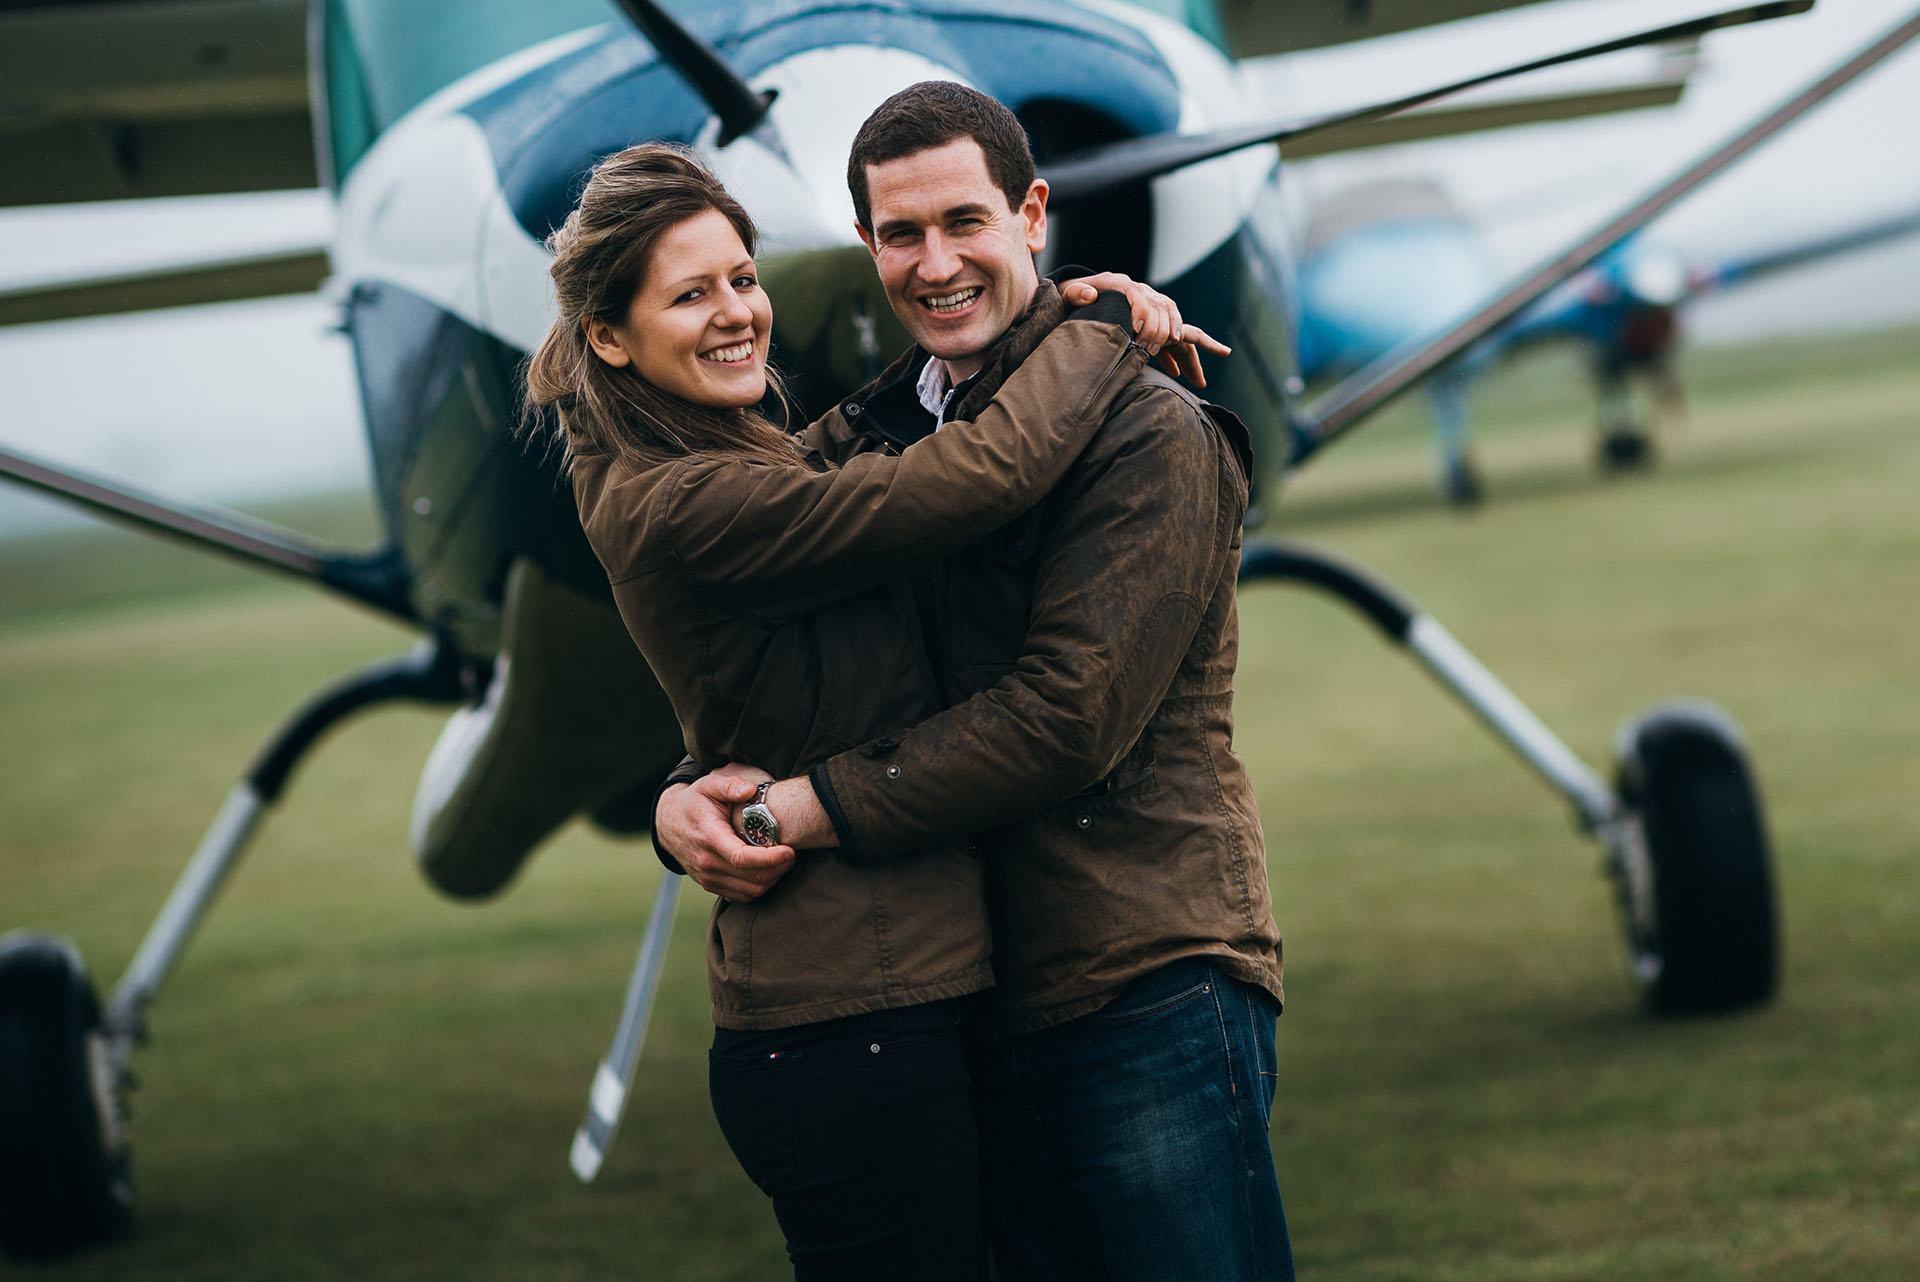 Dunkeswell Airfield Engagement Photographs_3